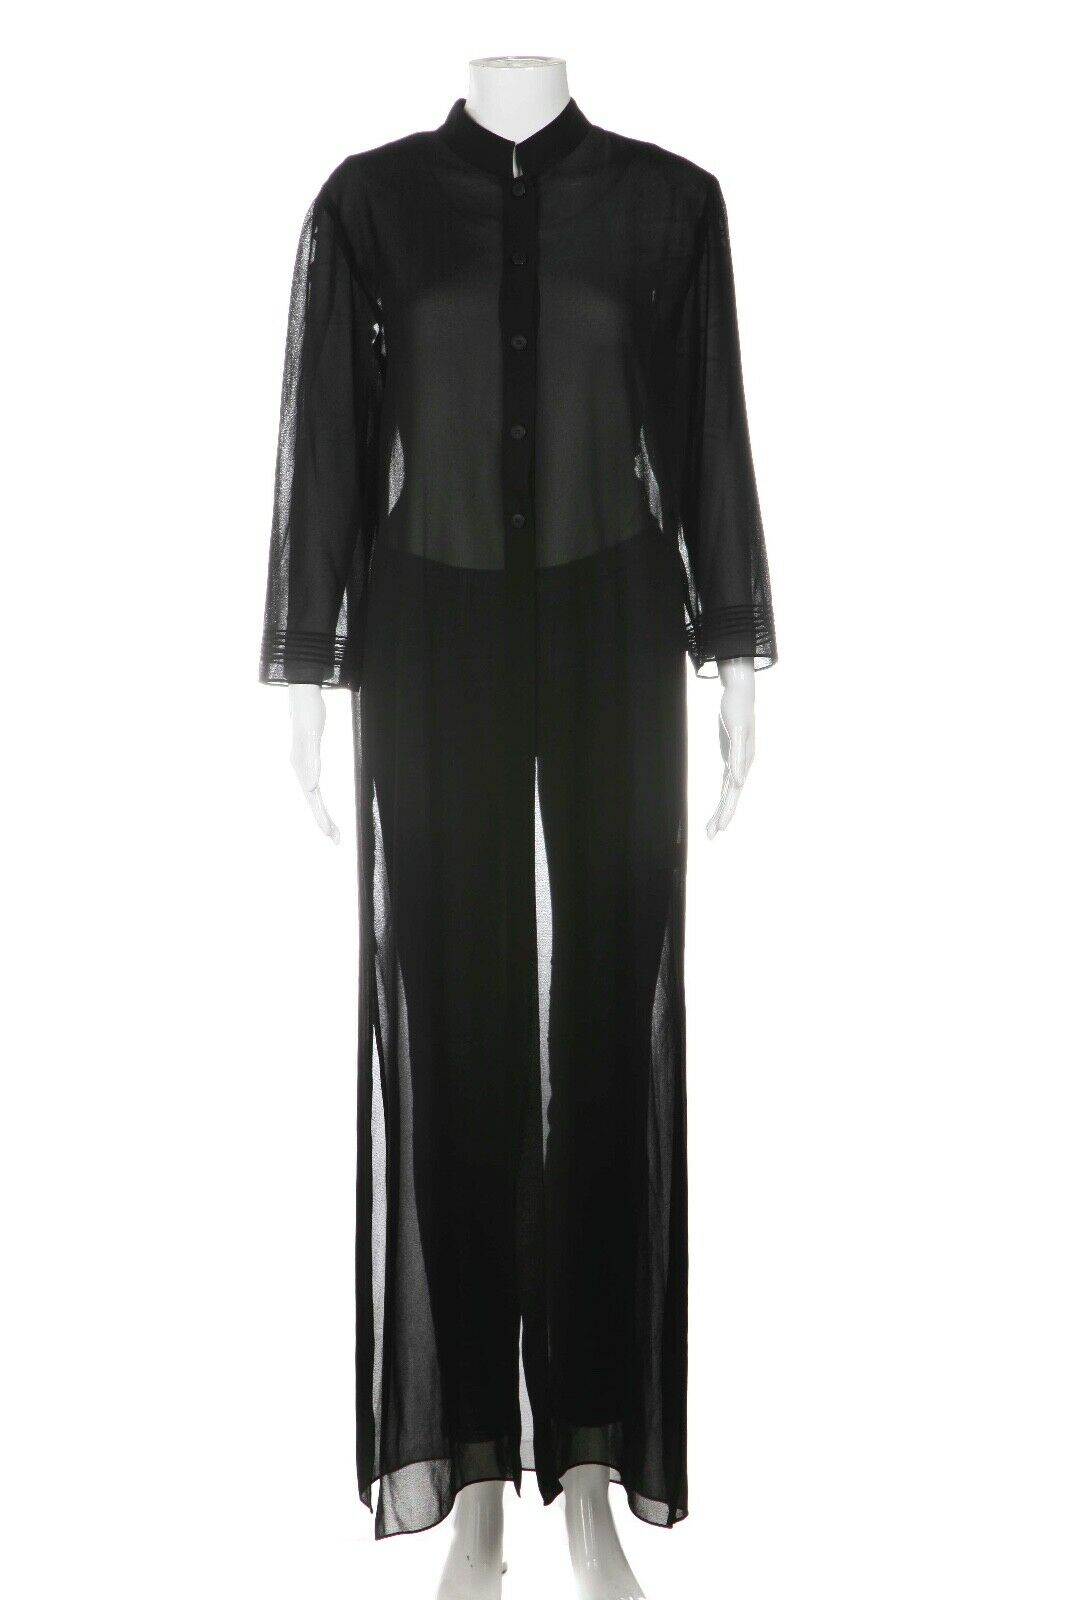 STUDIO I Sheer Long Duster Top Size 12